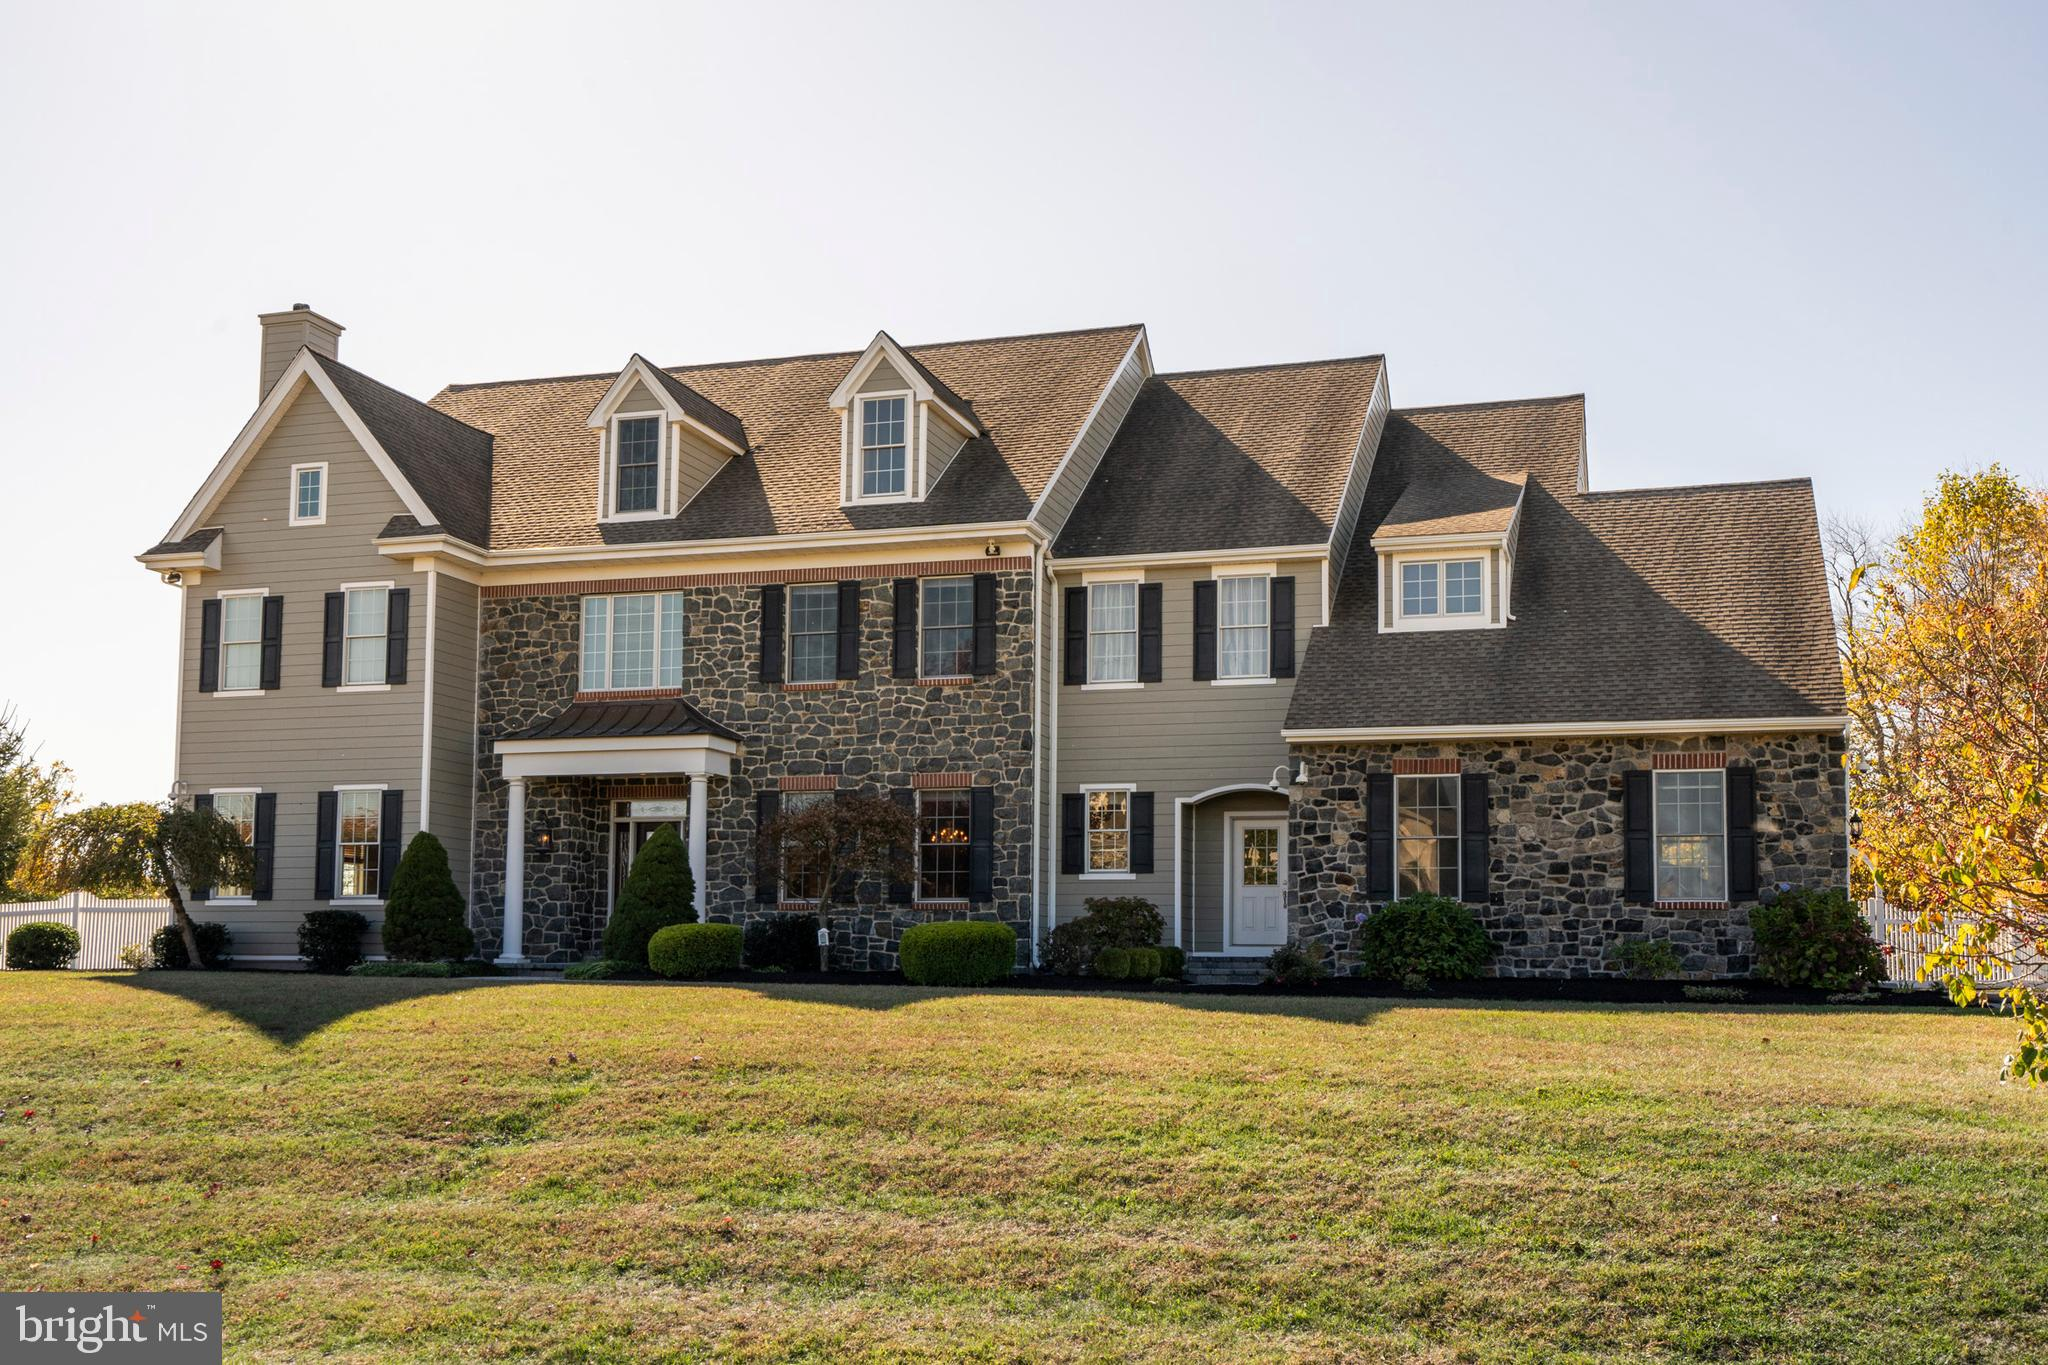 6 COLONIAL DRIVE, WEST CHESTER, PA 19382